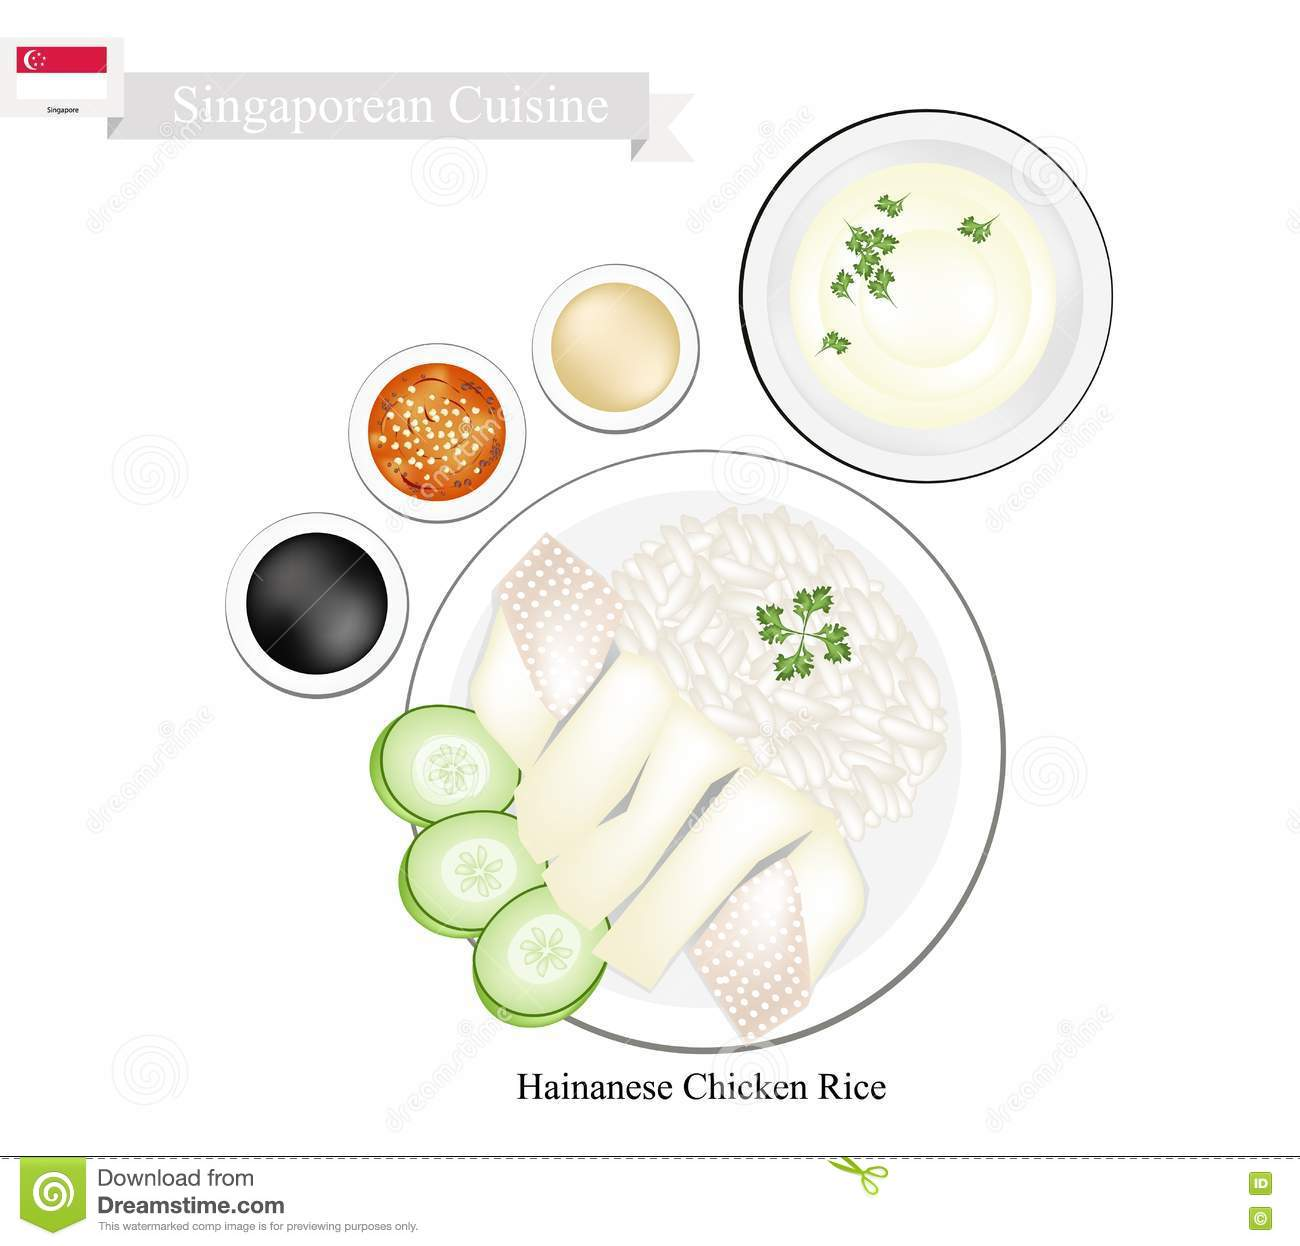 Chicken Cuisine Dish Hainanese Popular Rice Sauce